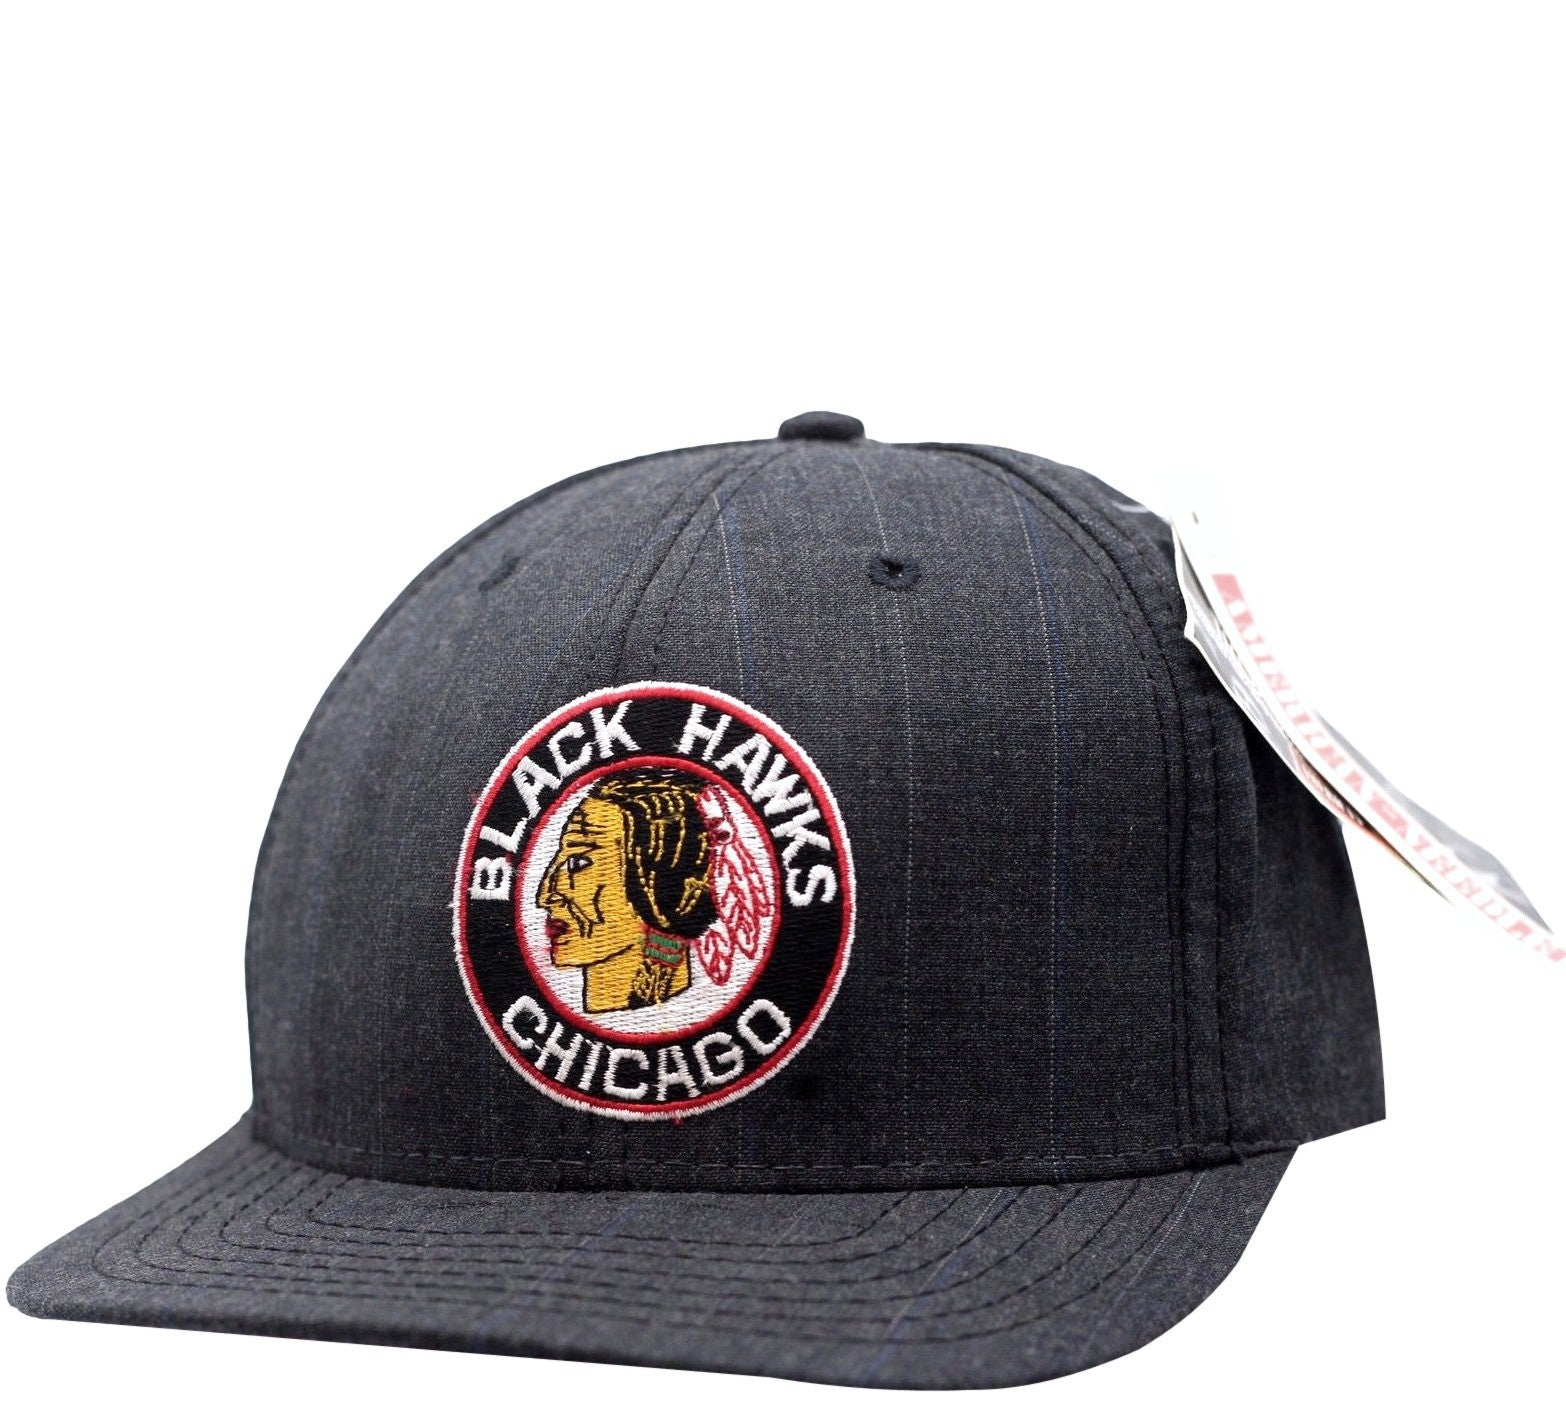 Blackhawks Vintage Strapback - And Still